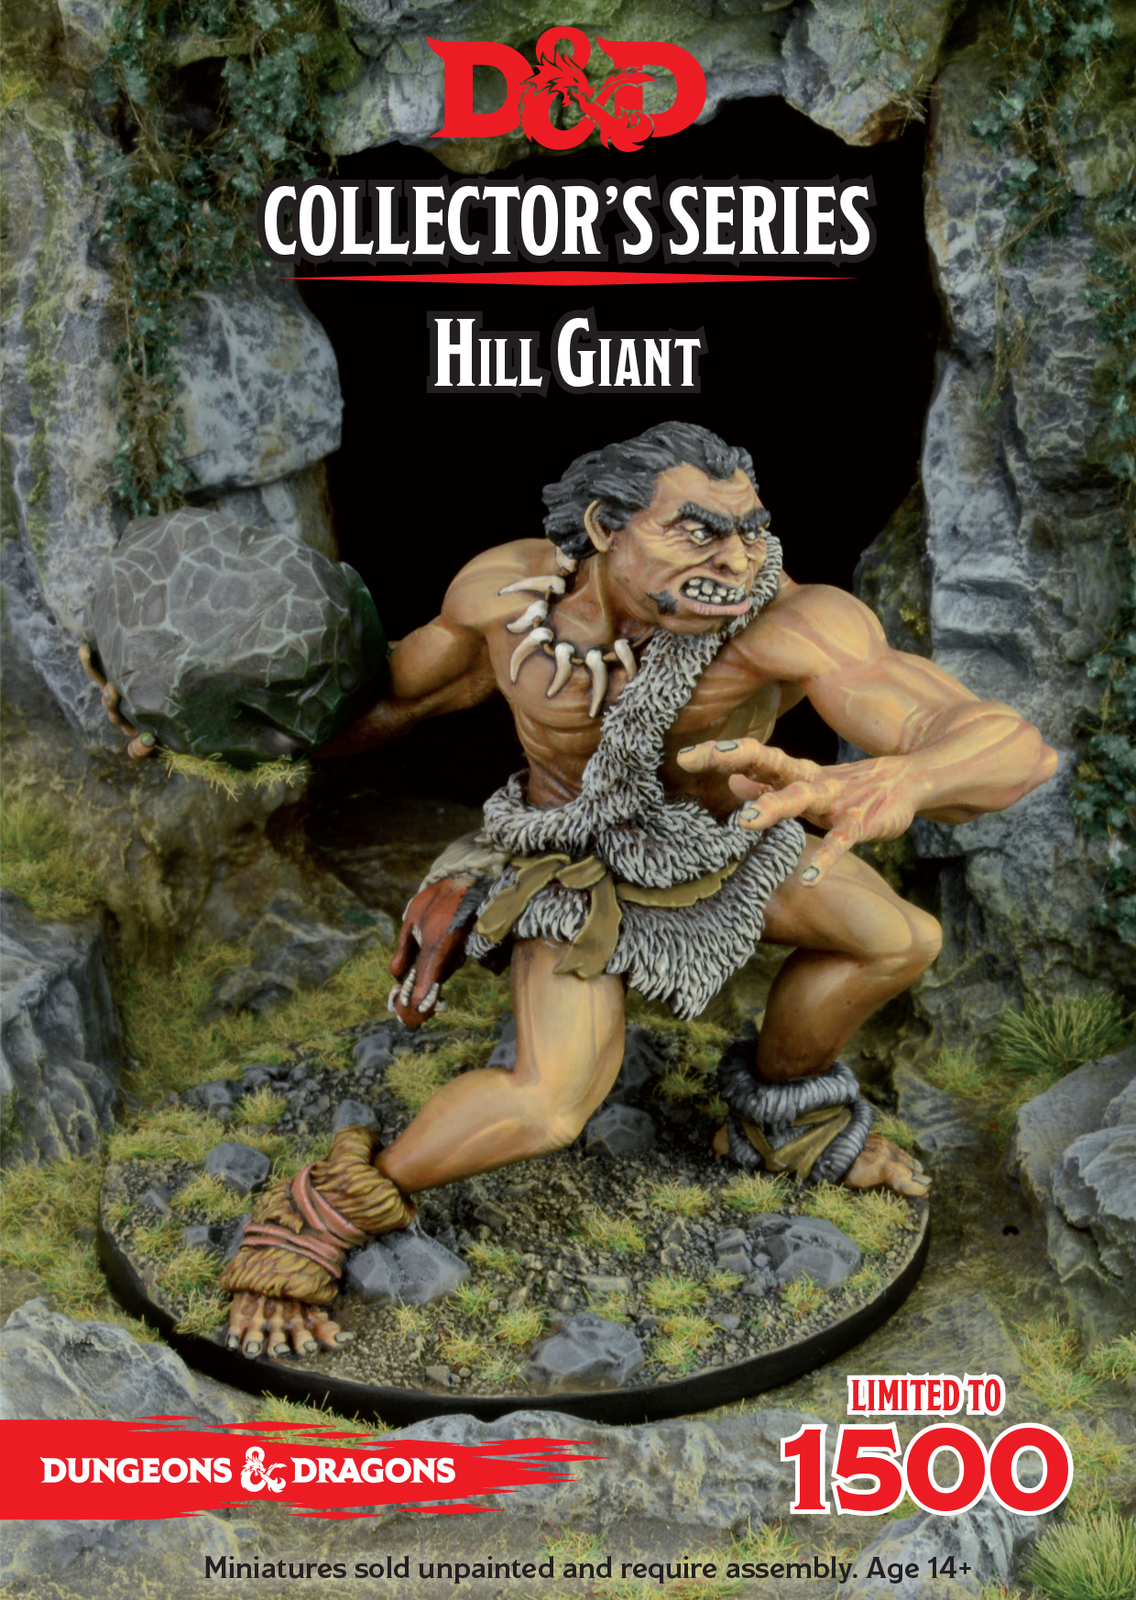 Dungeons & Dragons: Hill Giant image